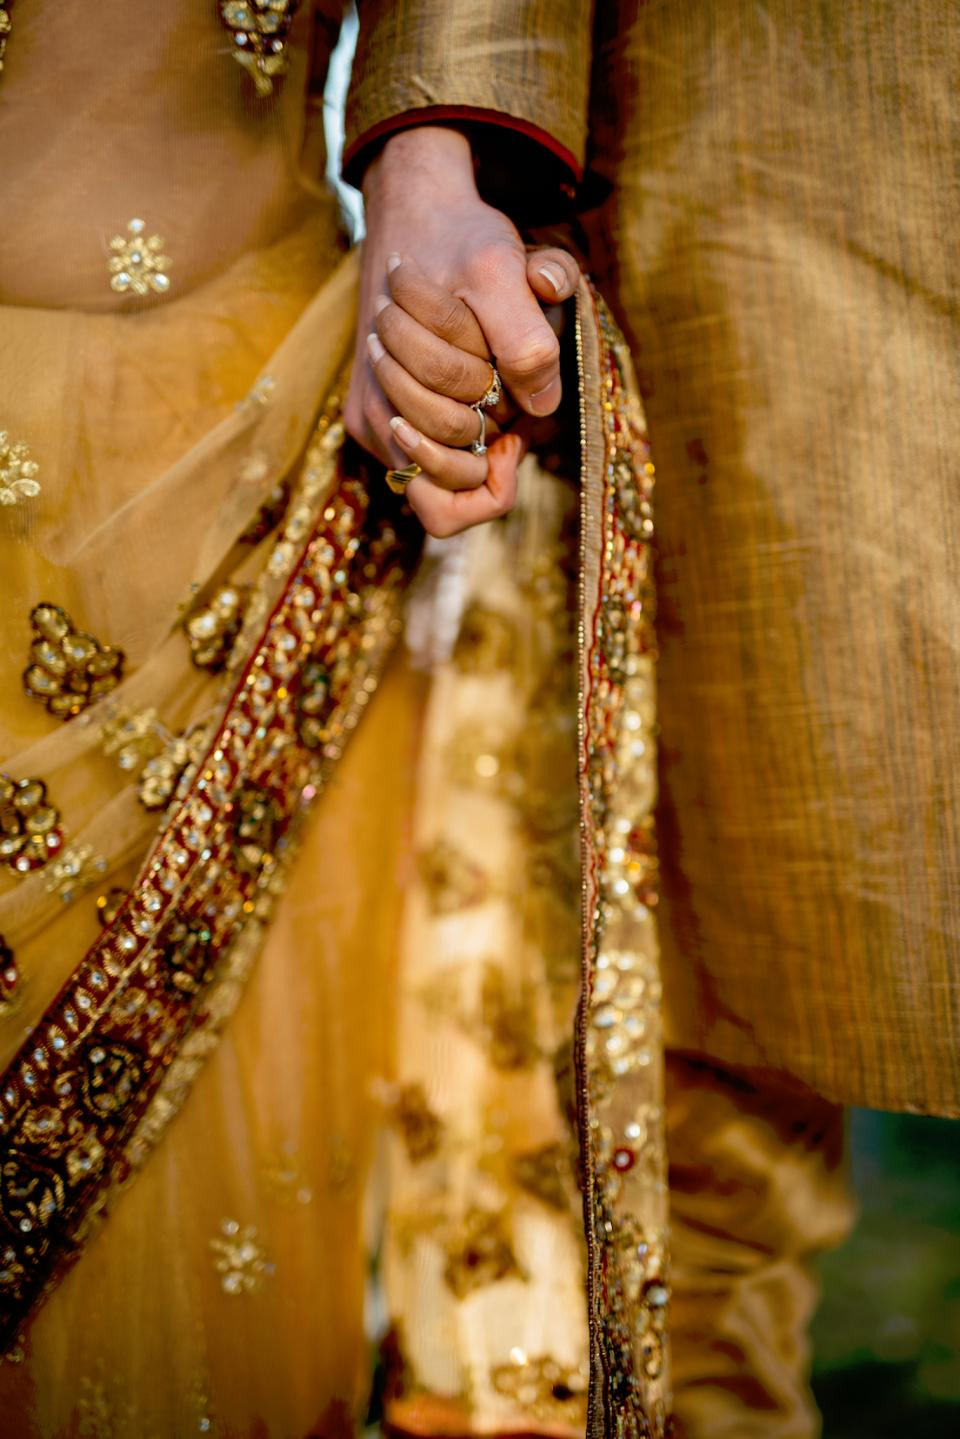 gold marriage wedding people man woman holding hands